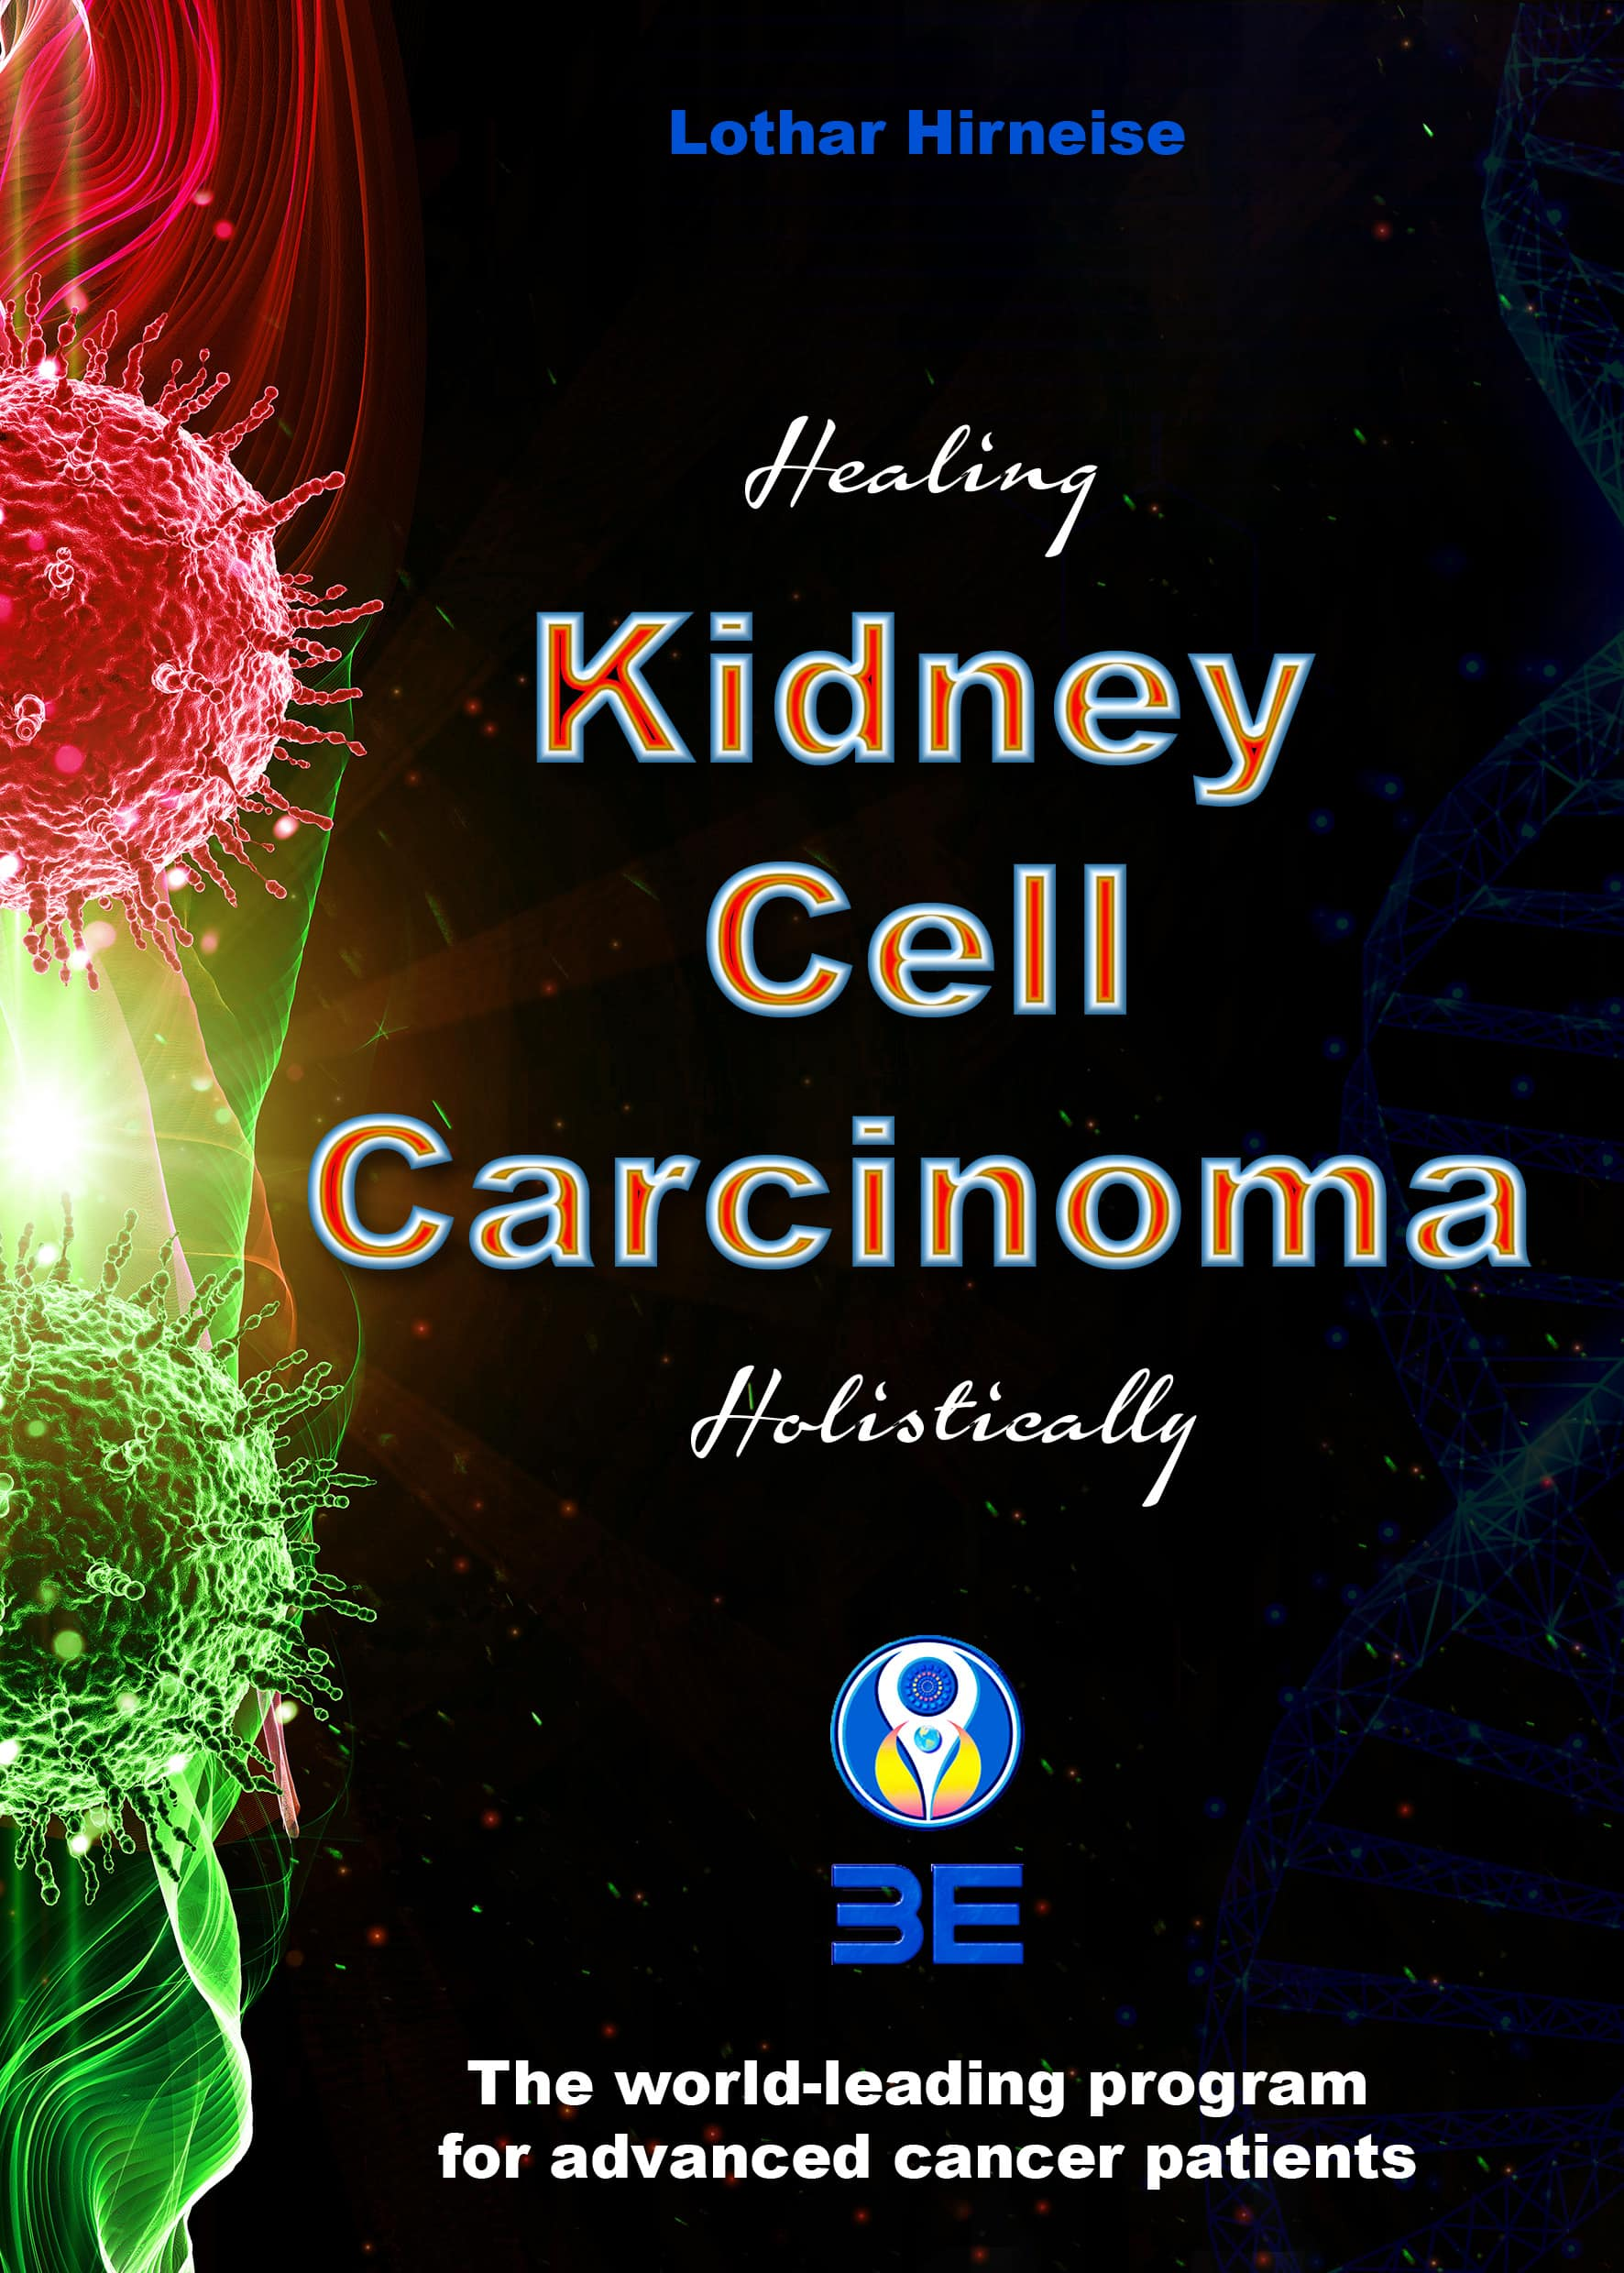 Kidney cell carcinoma